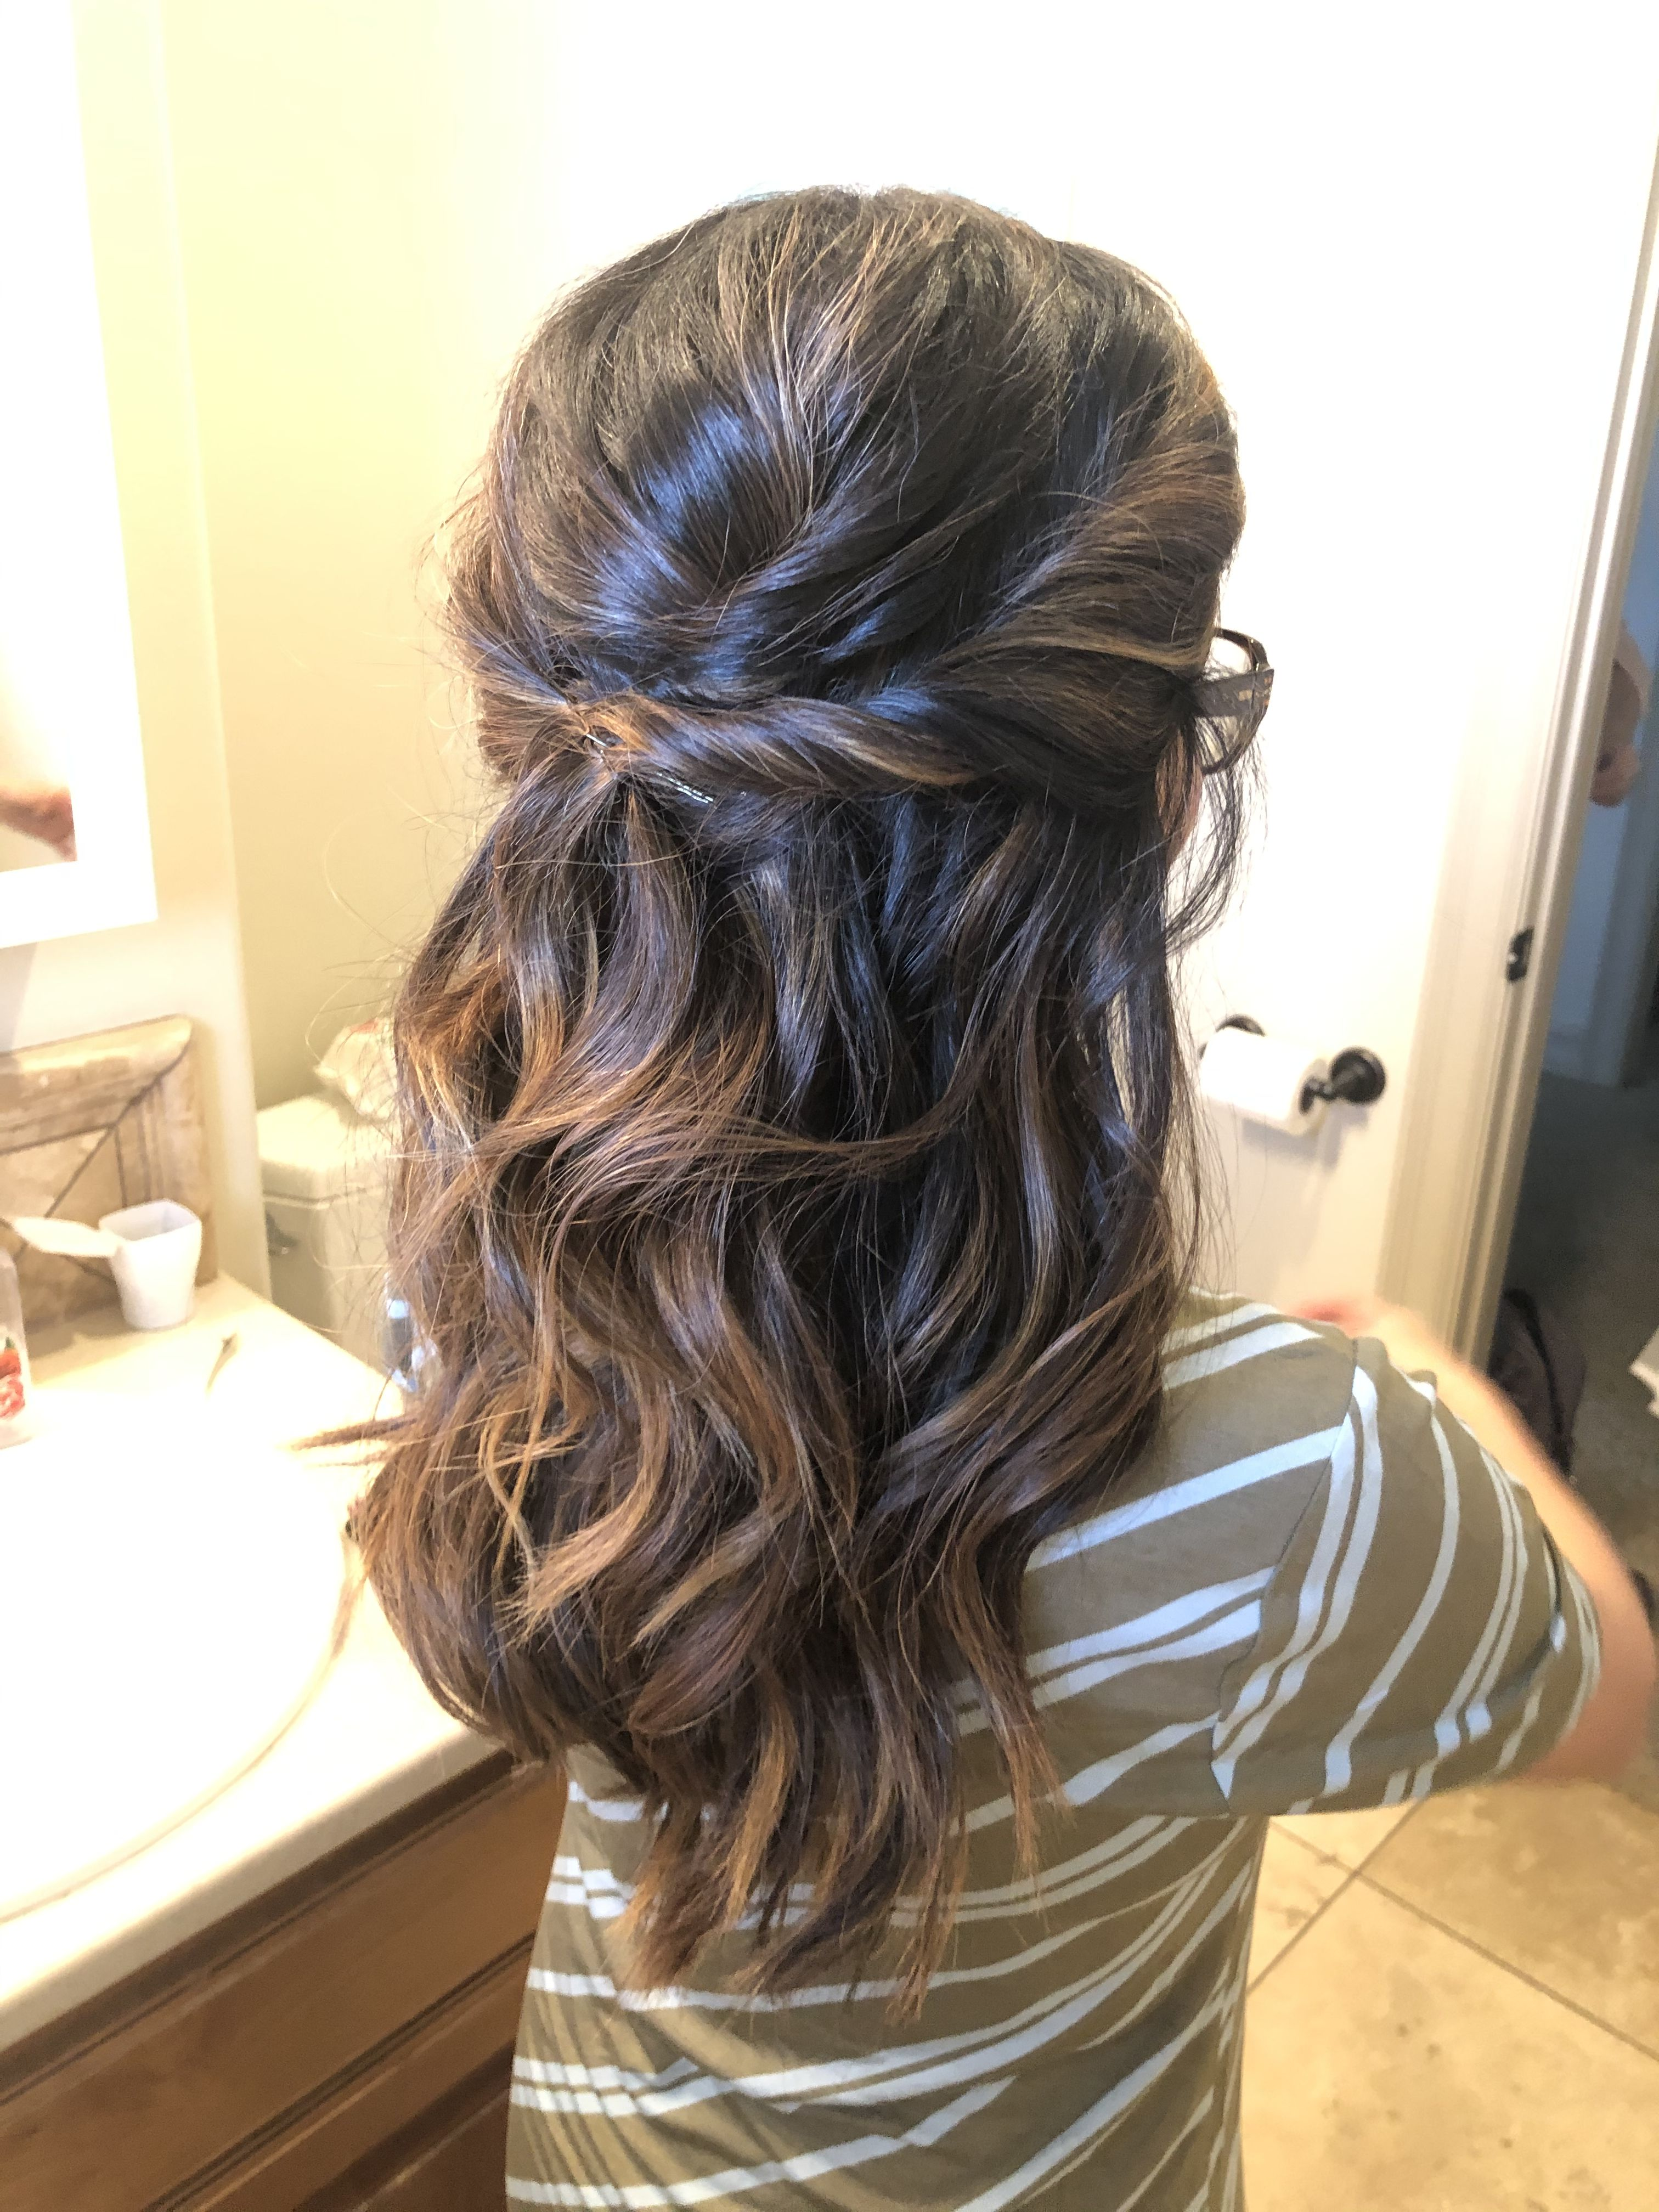 Simple and elegant hairstyle for your wedding or photos! in 2020 | Elegant hairstyles, Wedding ...